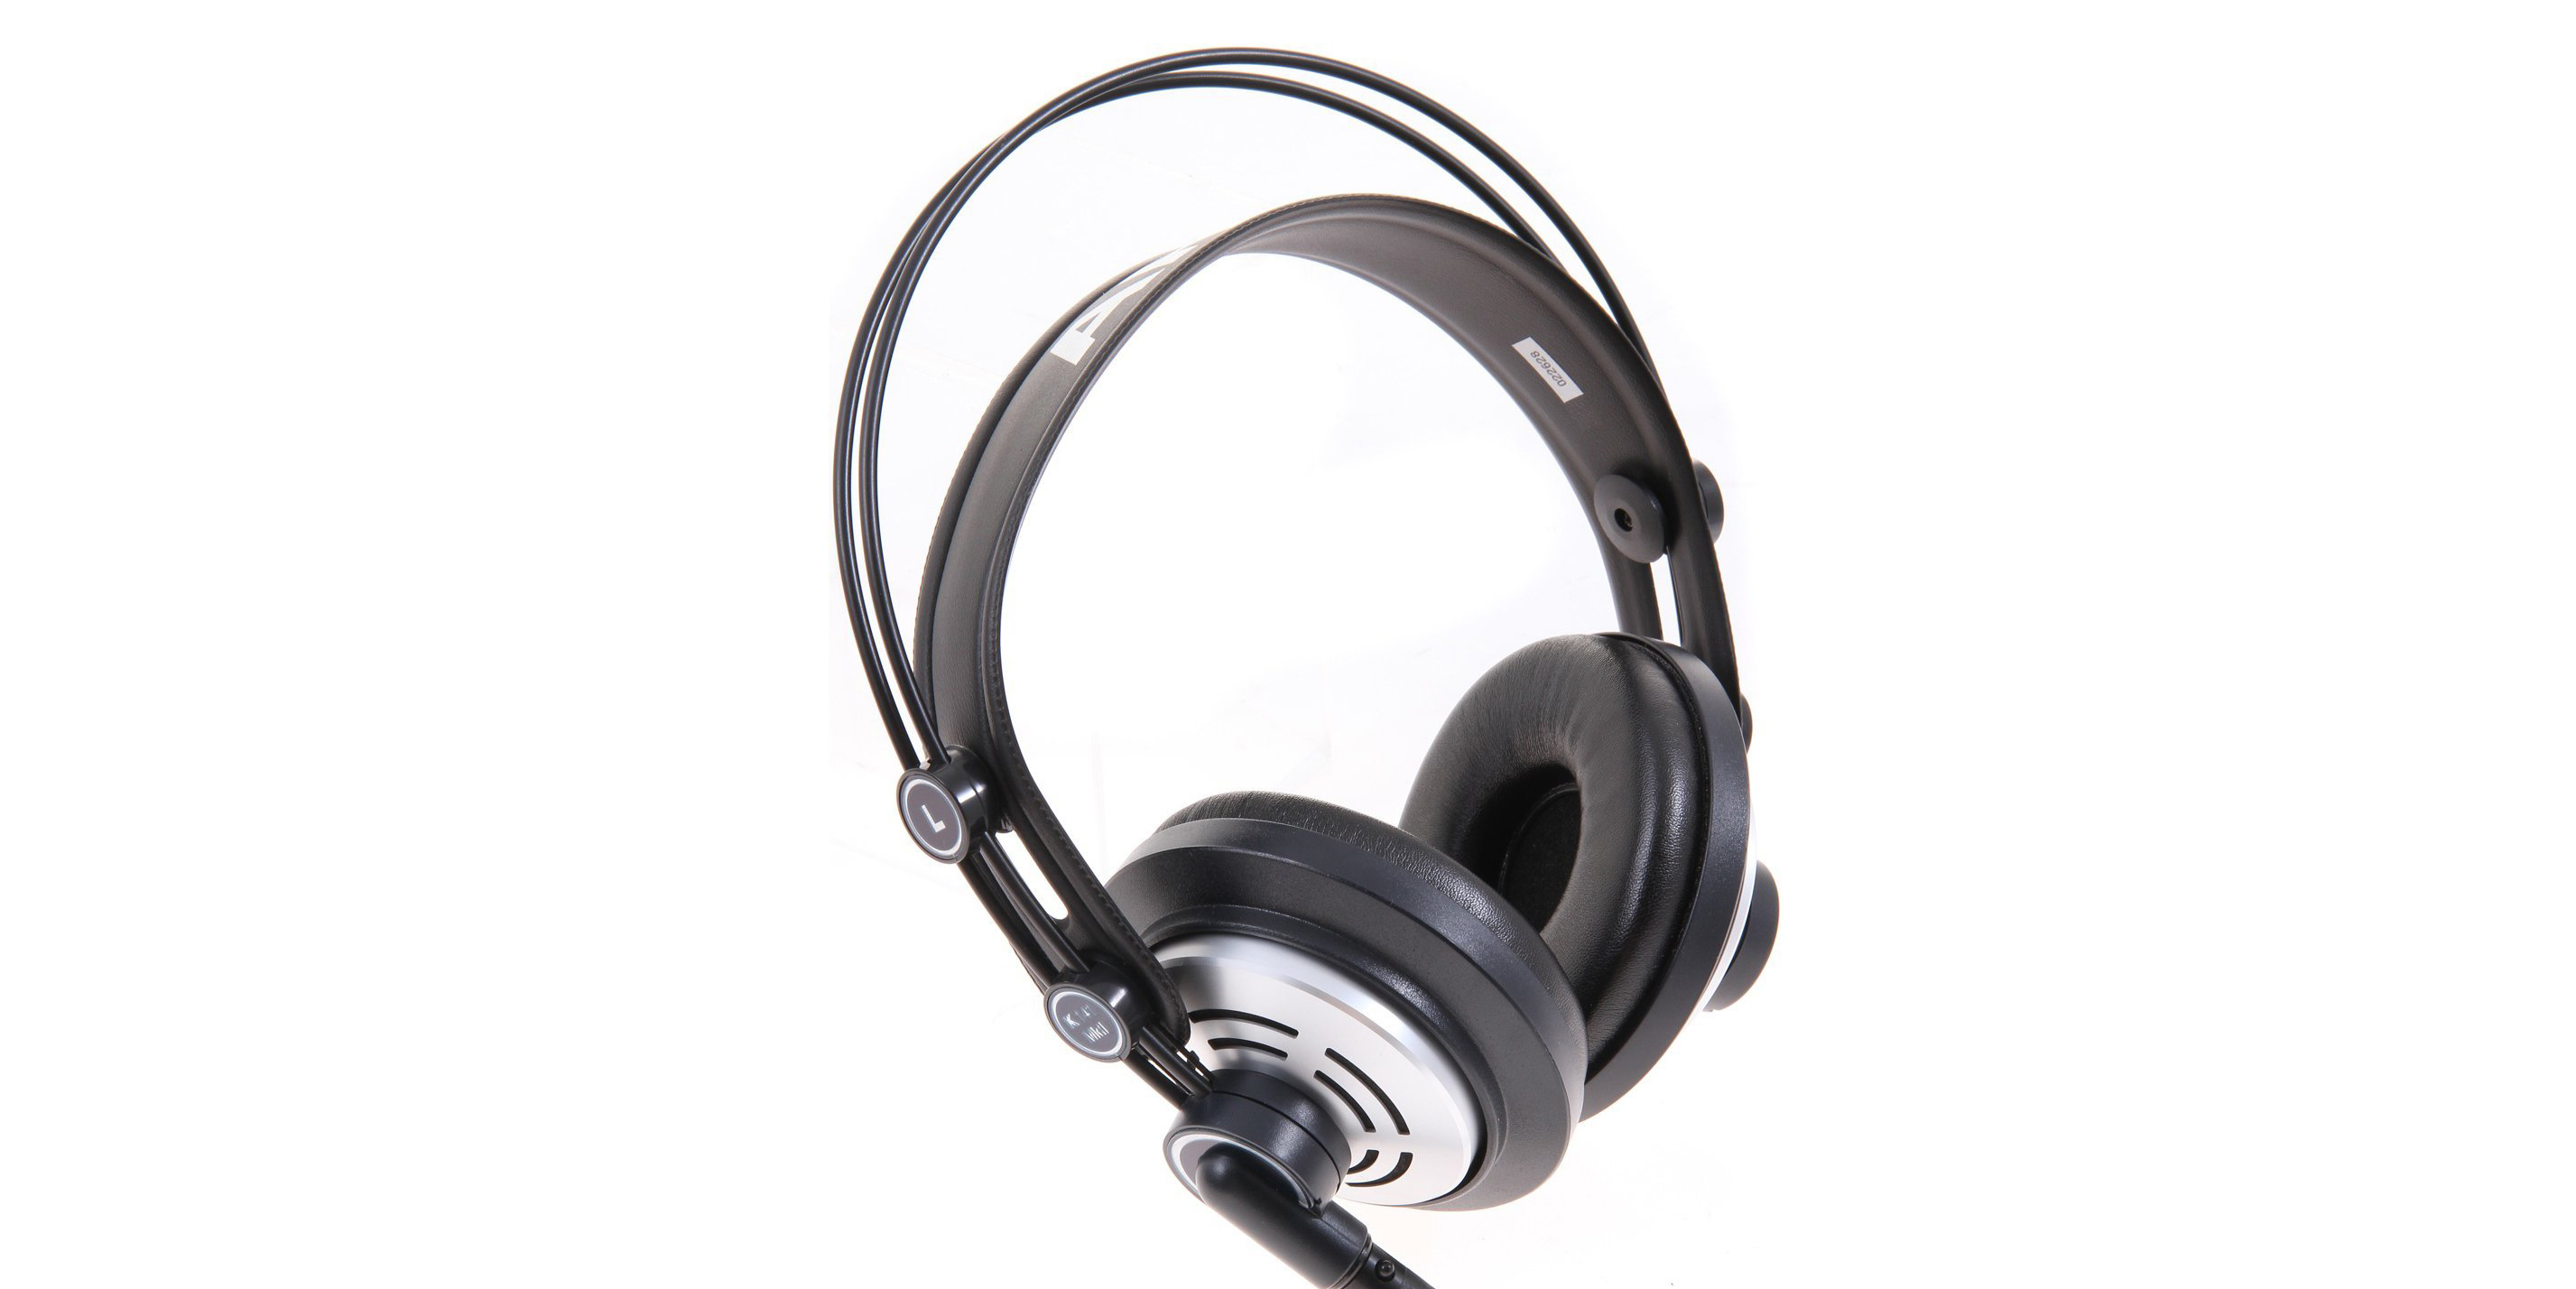 6589a5b41a7 AKG's K141 MKII Studio-grade Headphones drop to $70 shipped, down from  $130+ - 9to5Toys